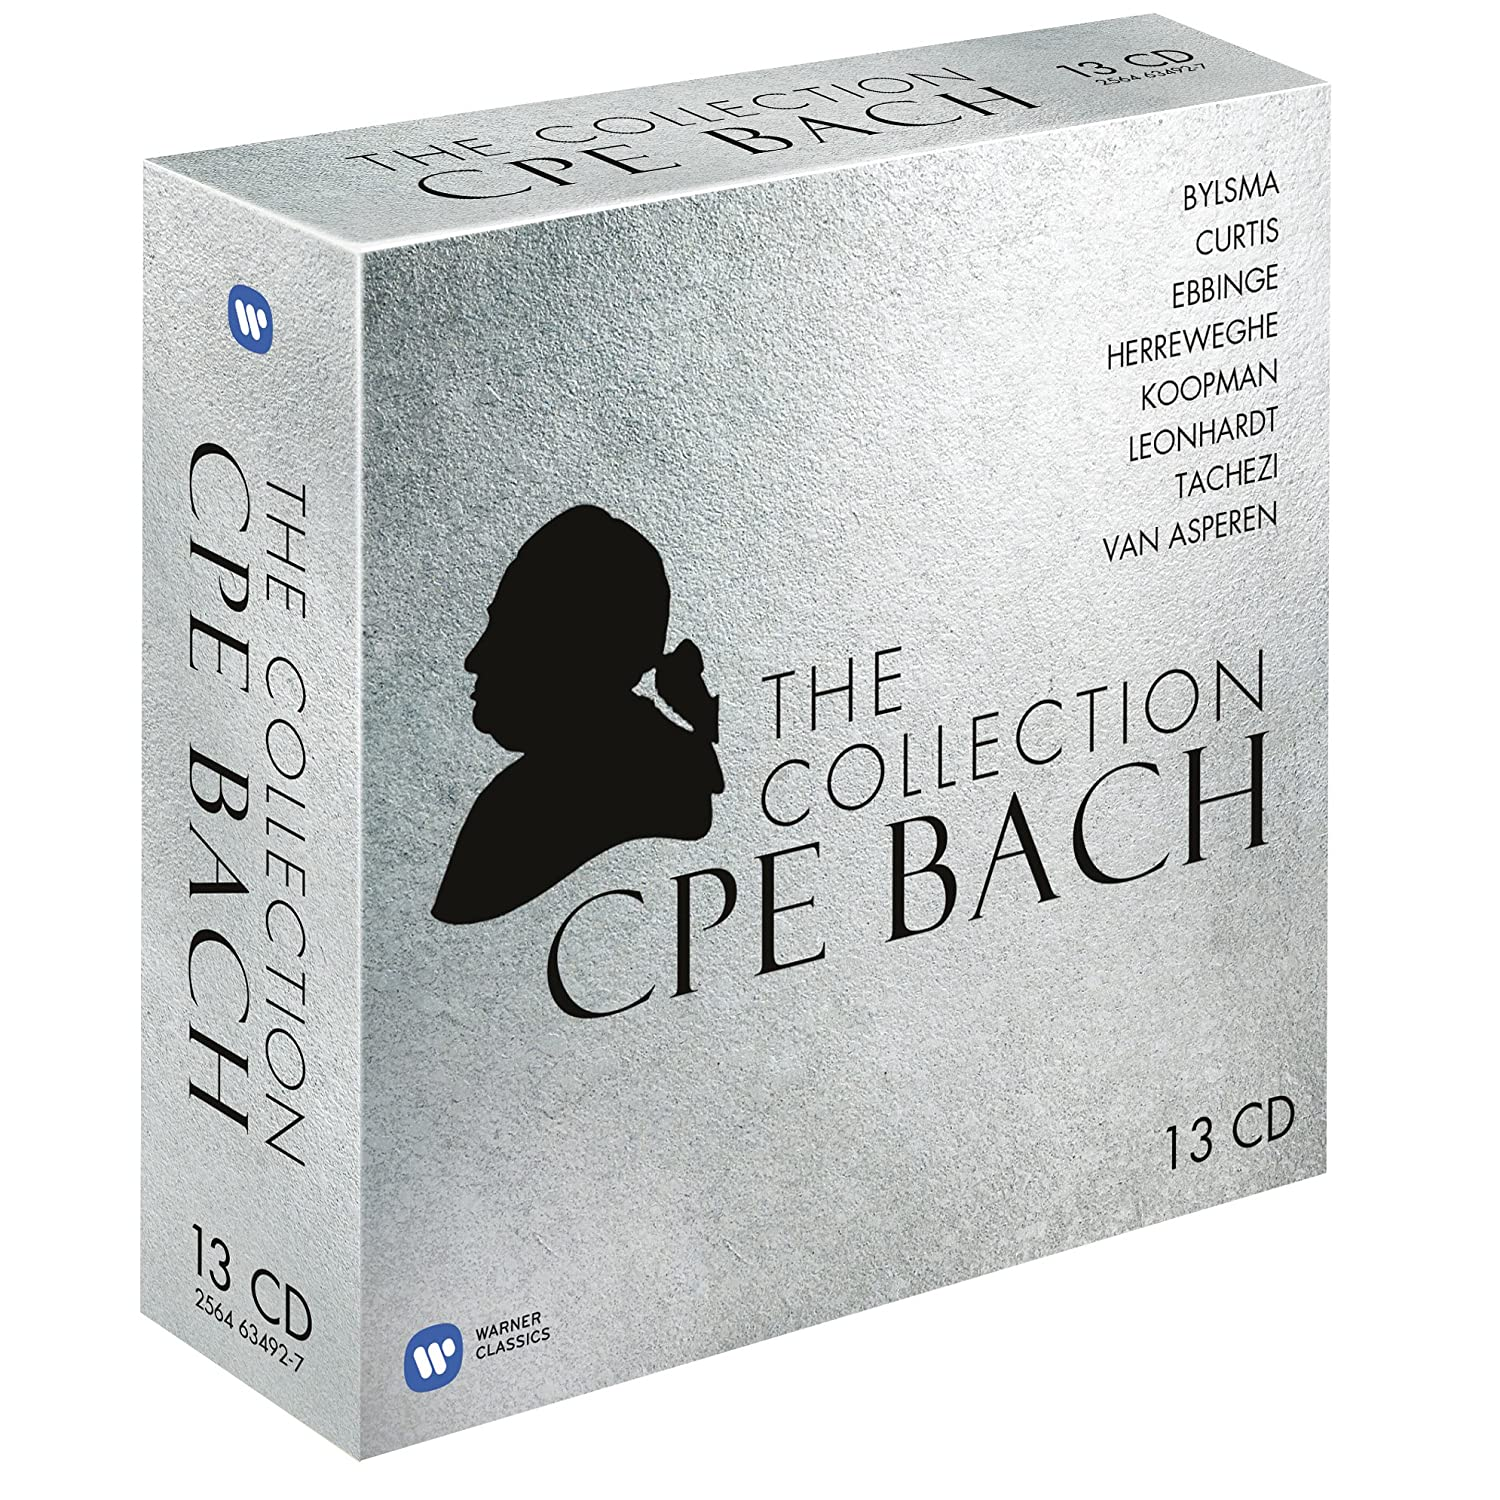 cpe bach essay Cpe bach: harpsichord concertos wq 30, 37 & 38 /les amis de philippe remy: suggested carl philipp emanuel bach one of bach's most valued contributions to the musical world was his essay on the true art of playing keyboard instruments.